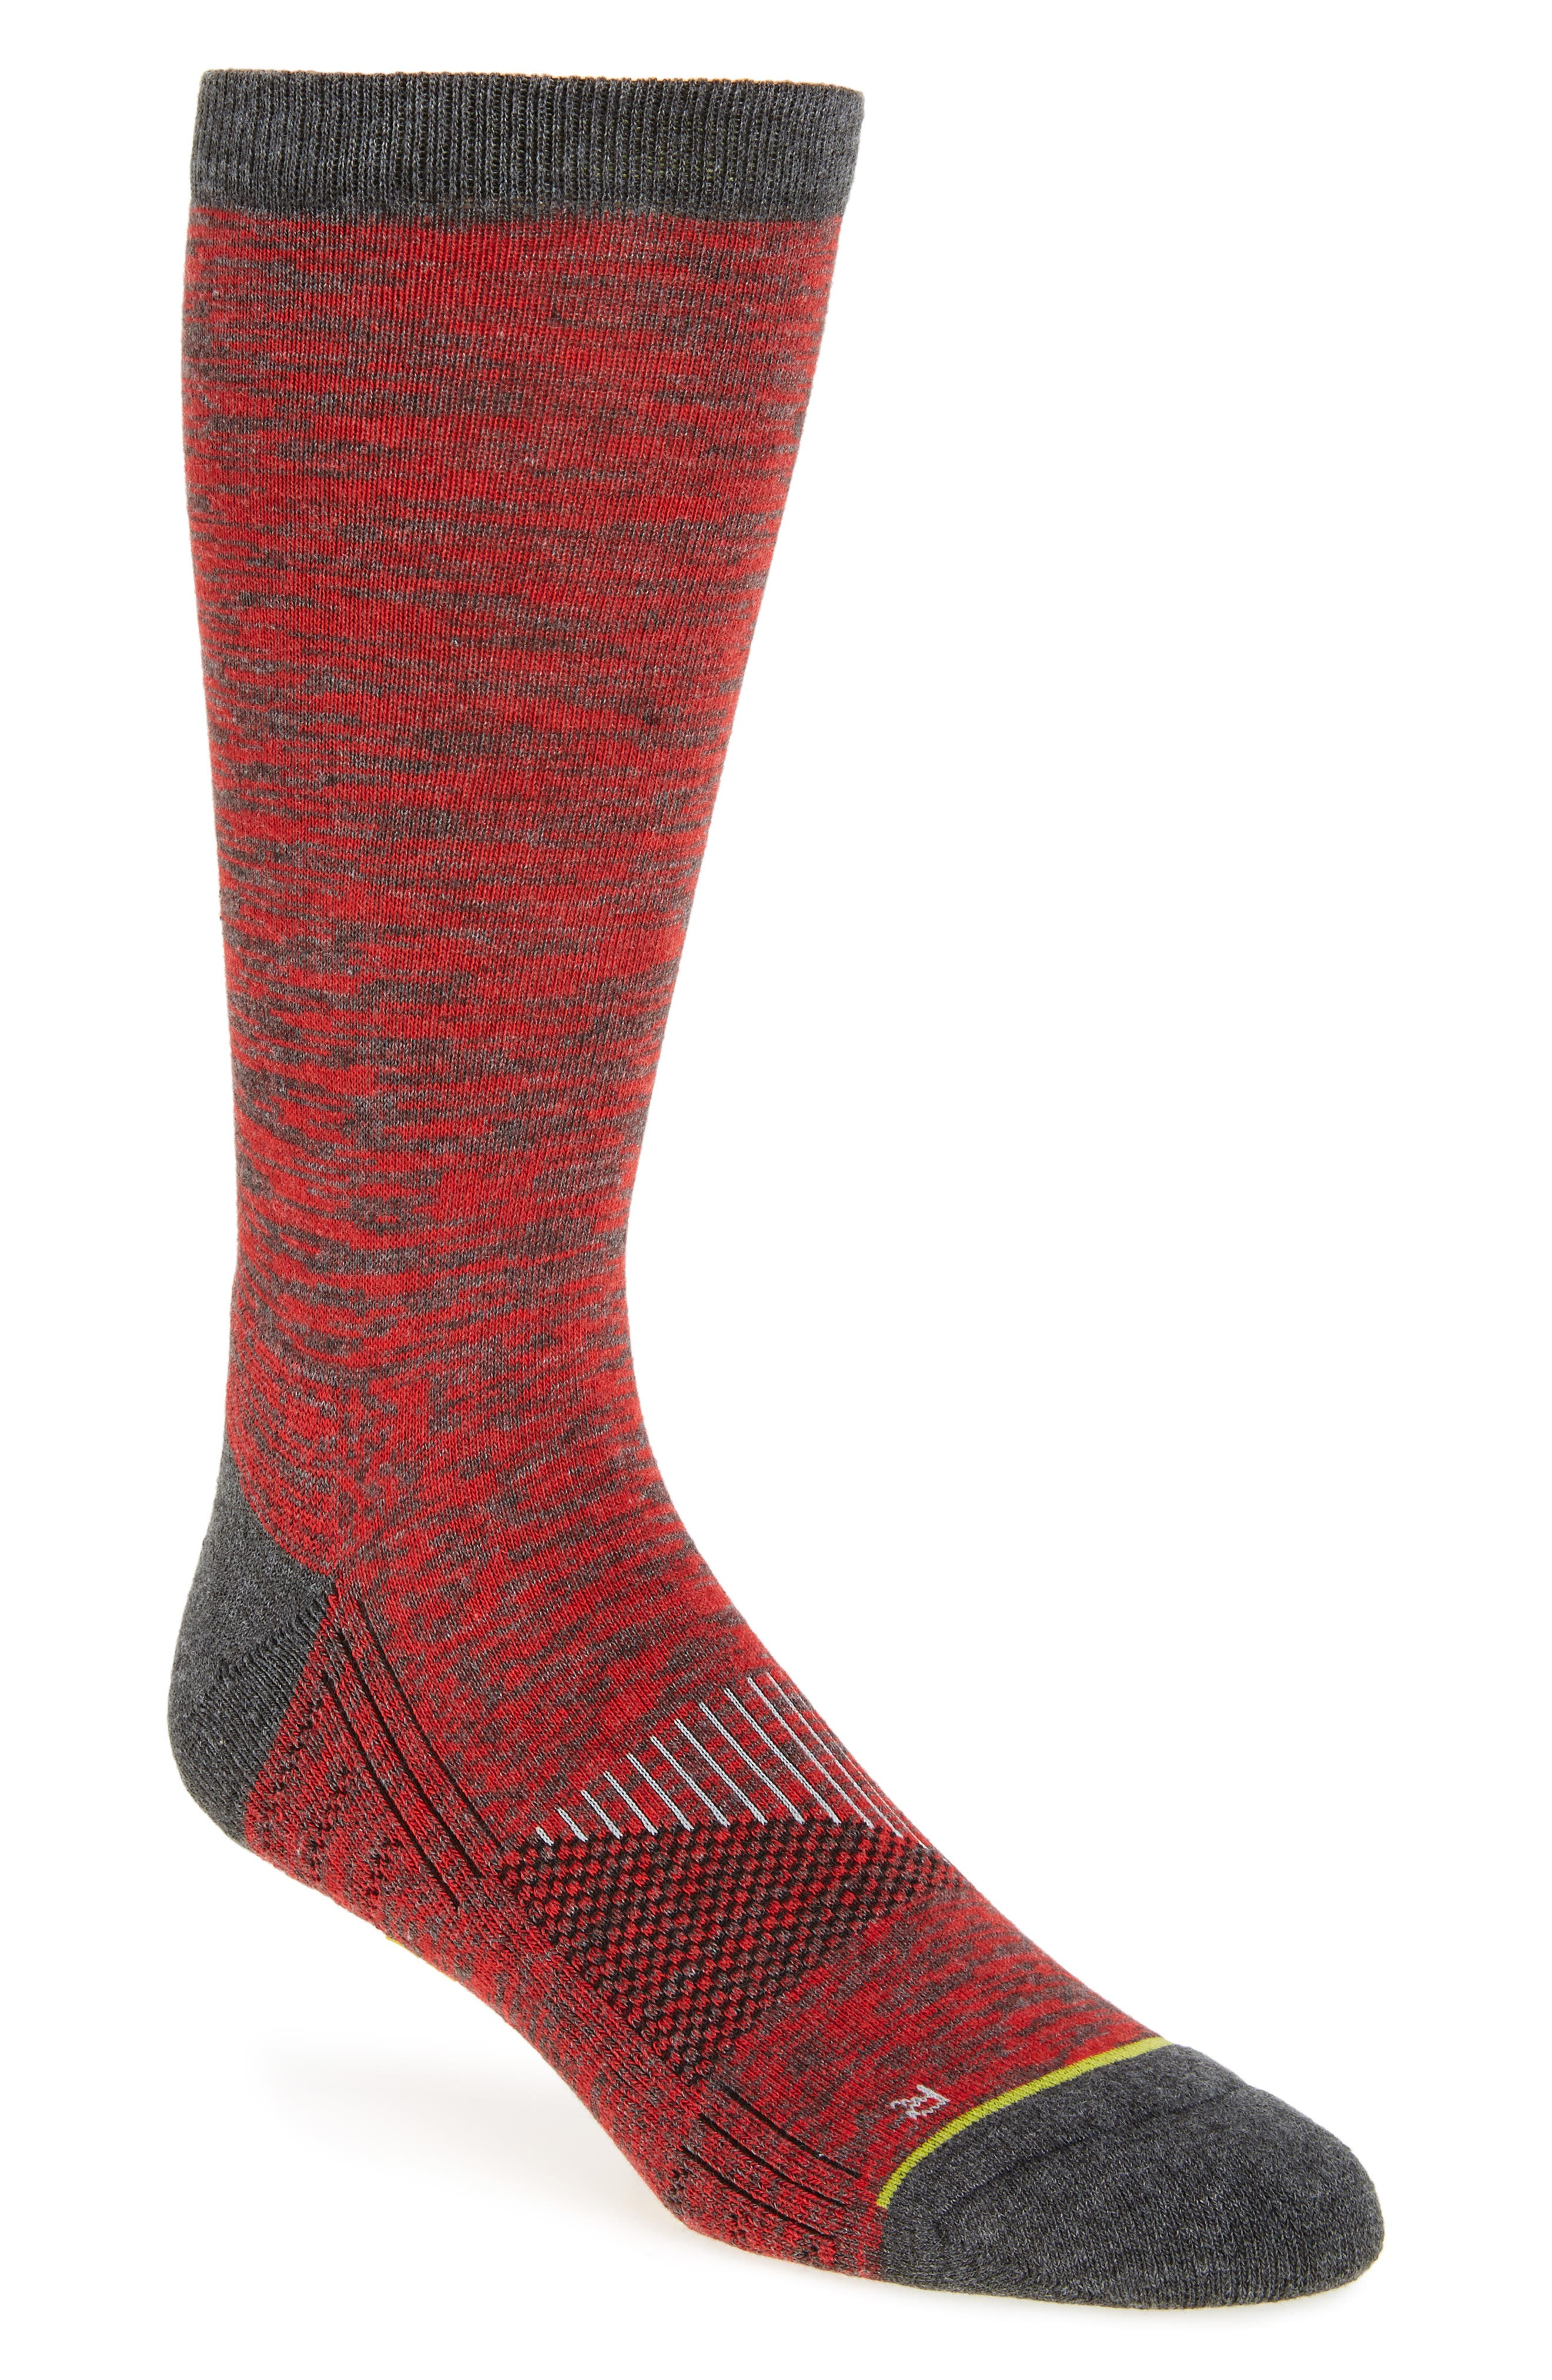 ZeroGrand Random Feed Crew Socks,                         Main,                         color, Graphite Heather